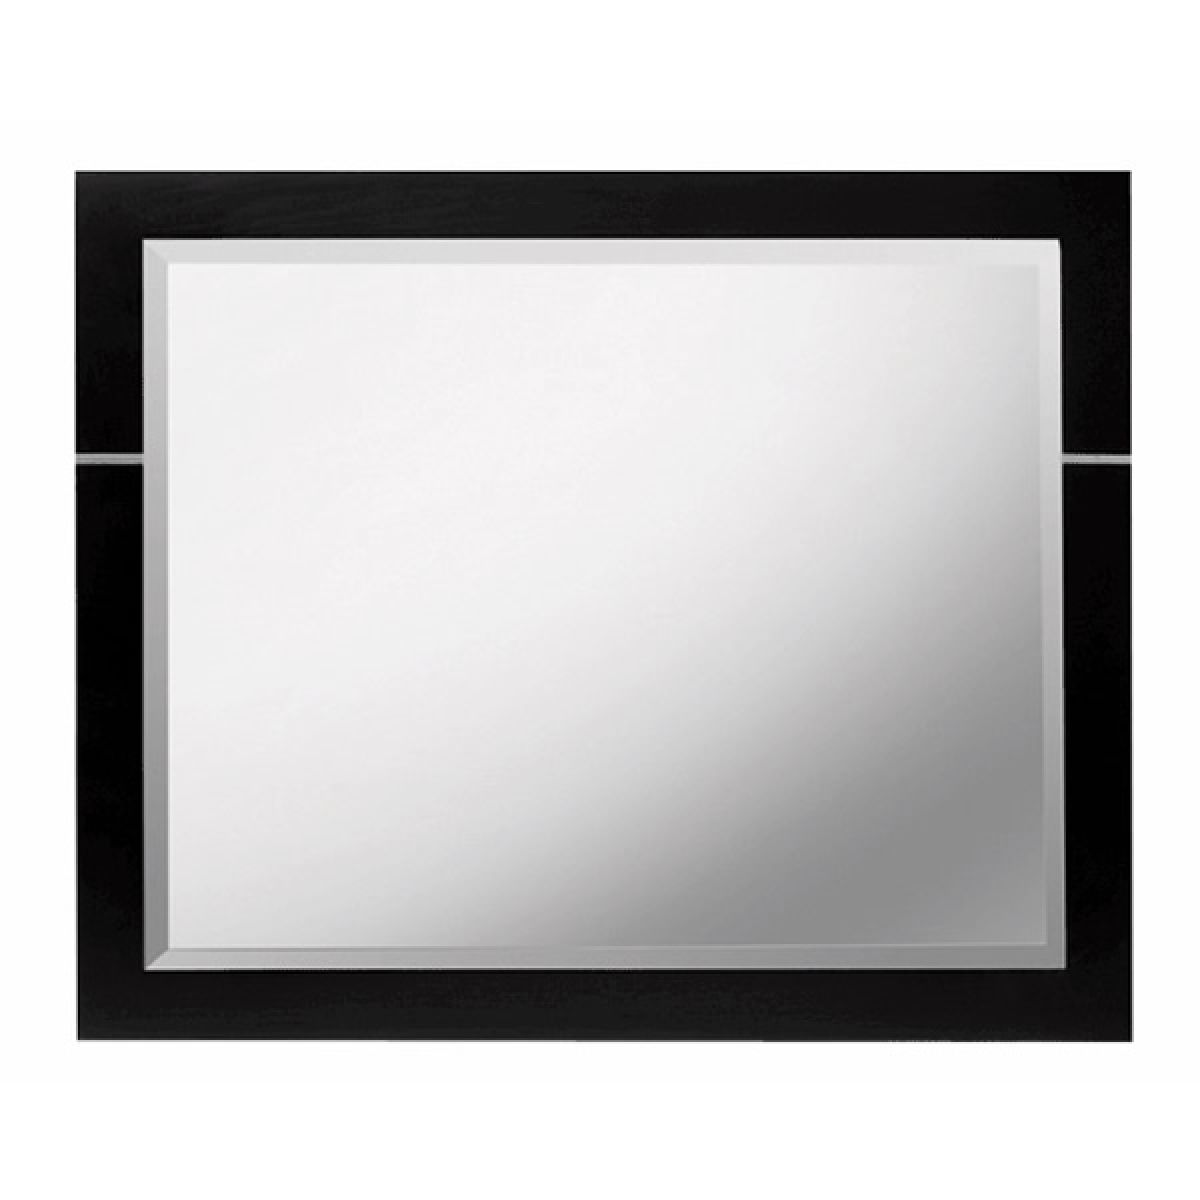 Deco Bathroom Mirror: Imperial Astoria Deco Cuda Metal Weave Bathroom Mirror